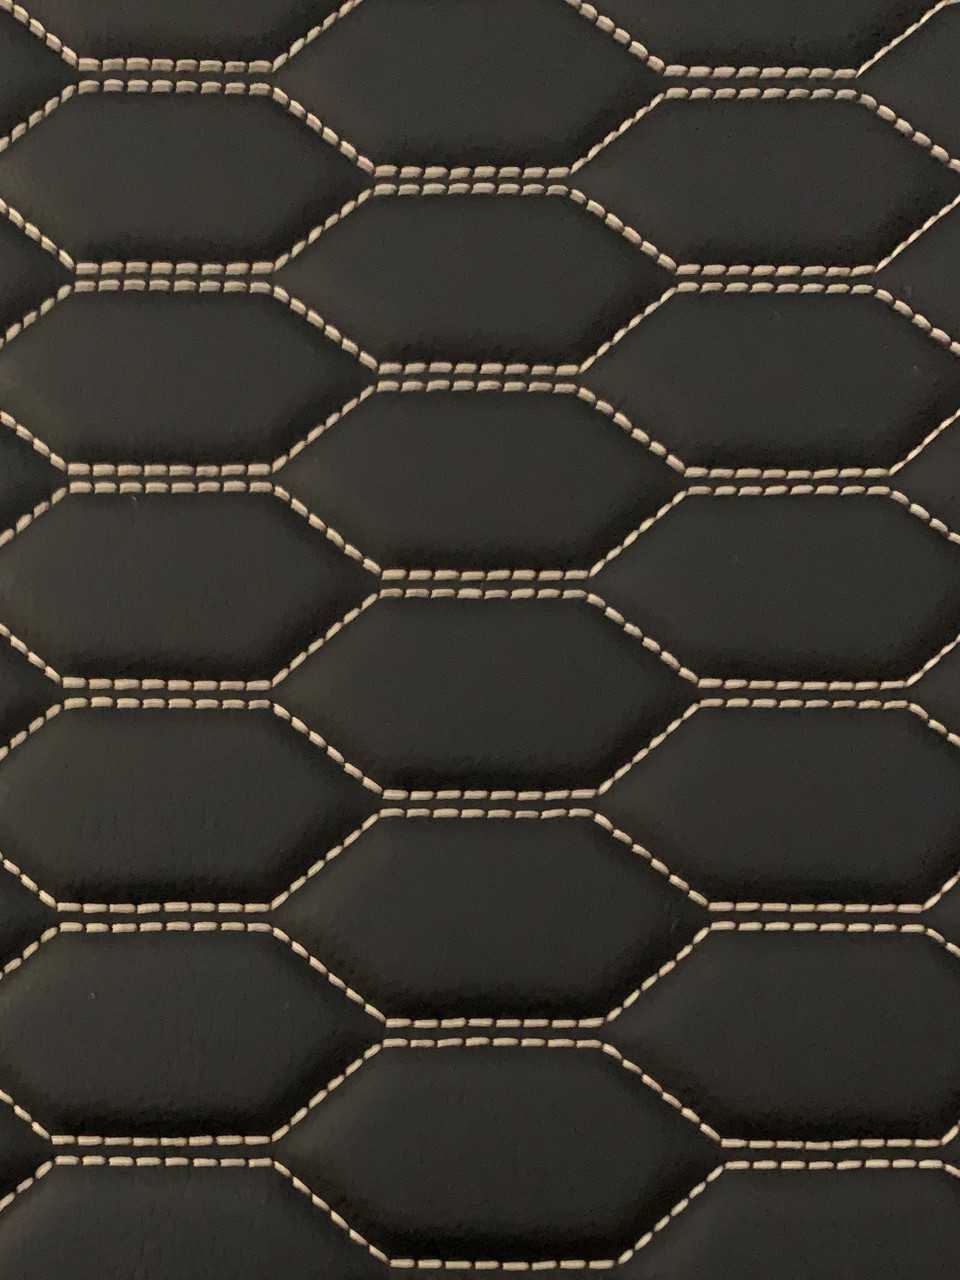 Real quilted automotive grade black vinyl with gold stitching